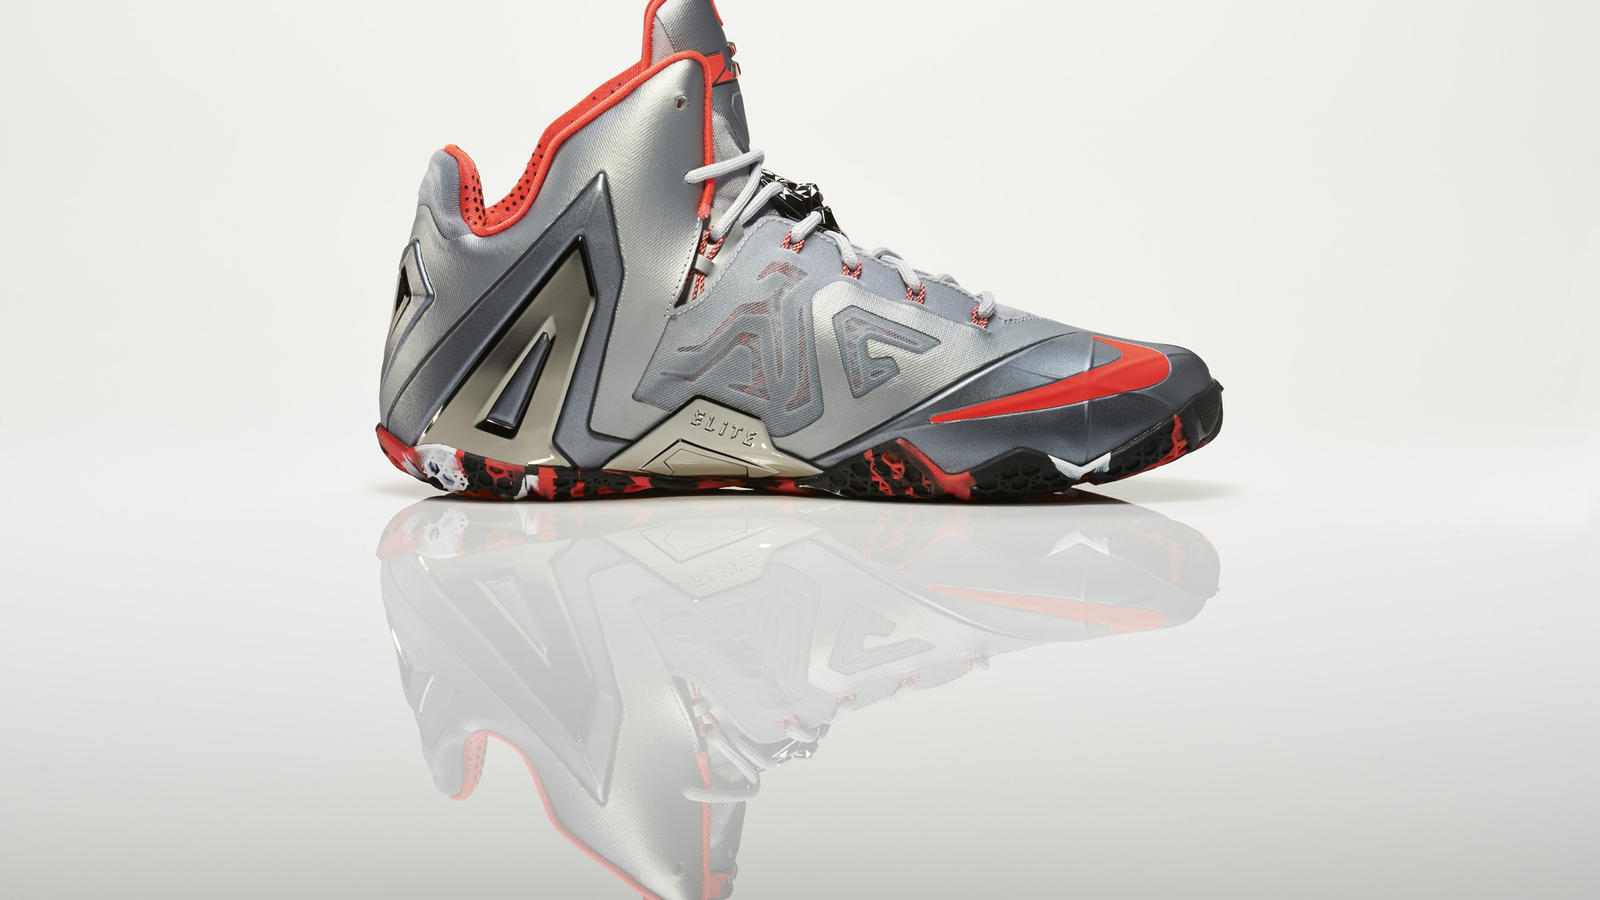 su14_bb_lebron11_elite_642846_001_return_medial_0271